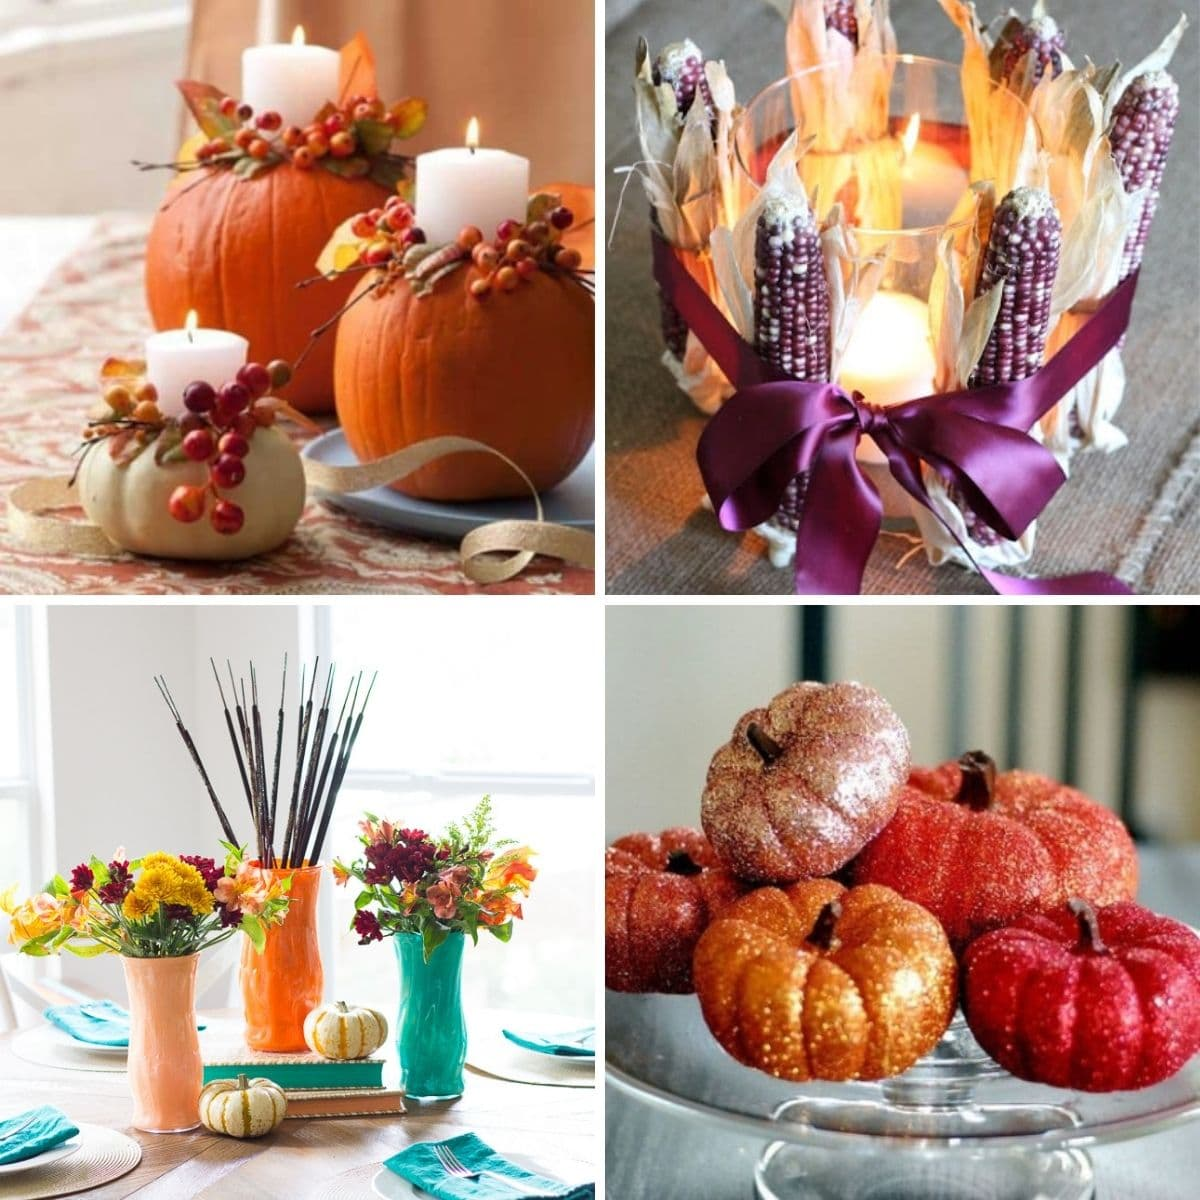 21 Diy Thanksgiving Centerpieces That Wow Your Guests